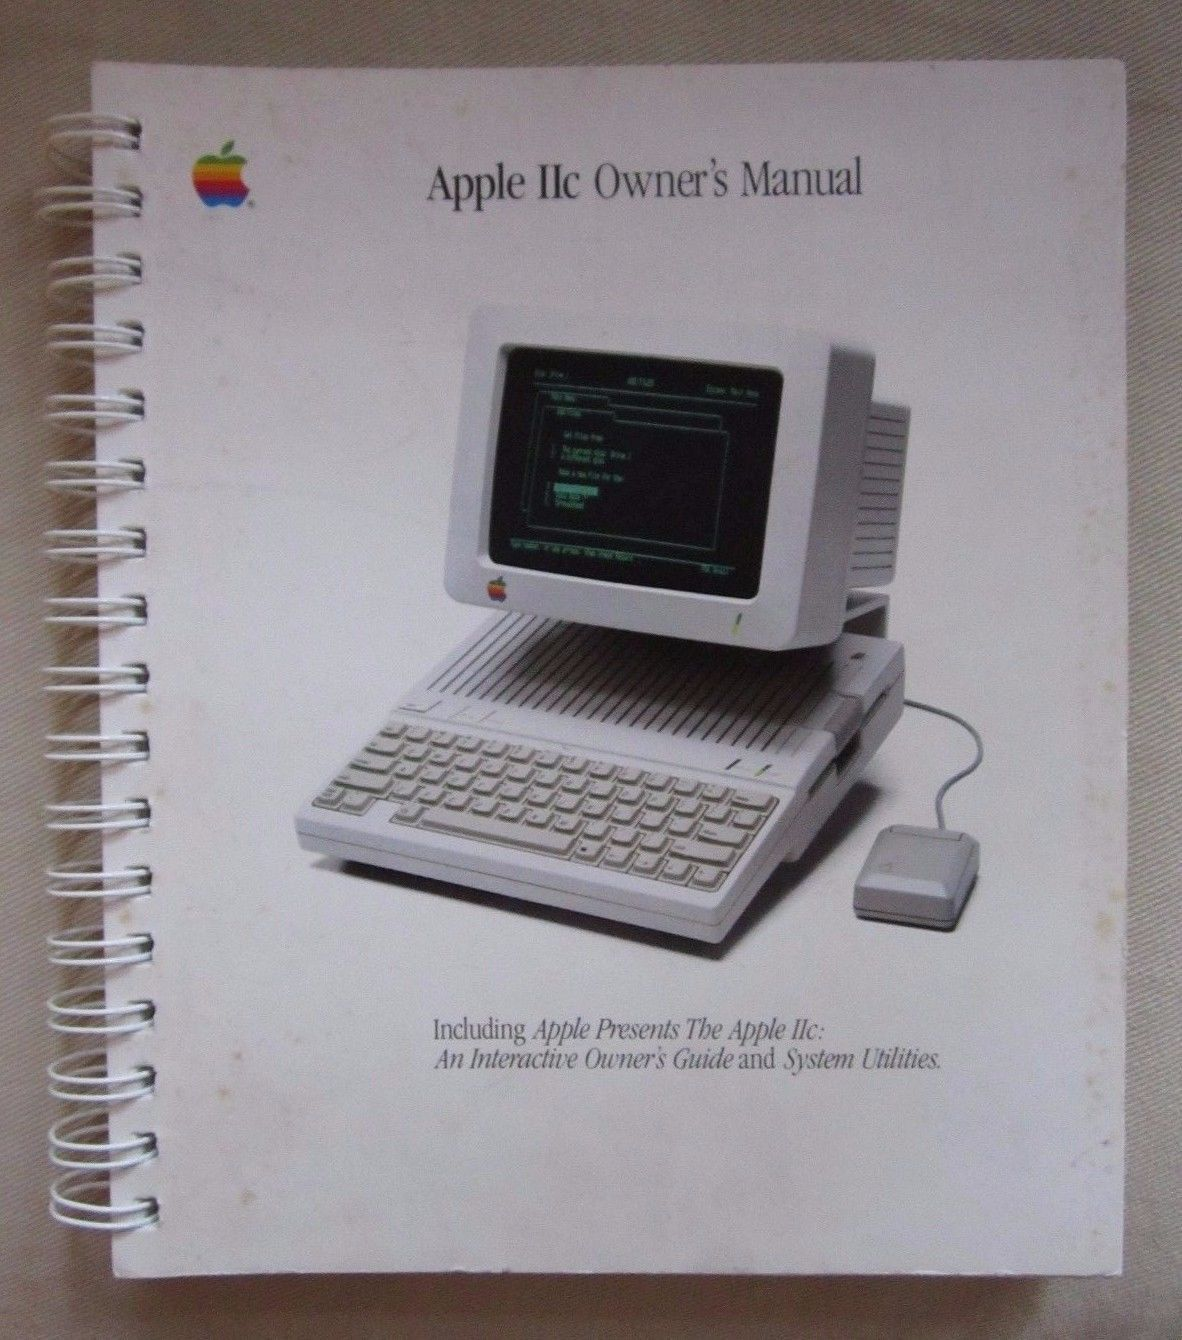 apple iic owner s user manual guide computer spiralbound book system rh pinterest com Apple Help iPad User Manual Apple iPod